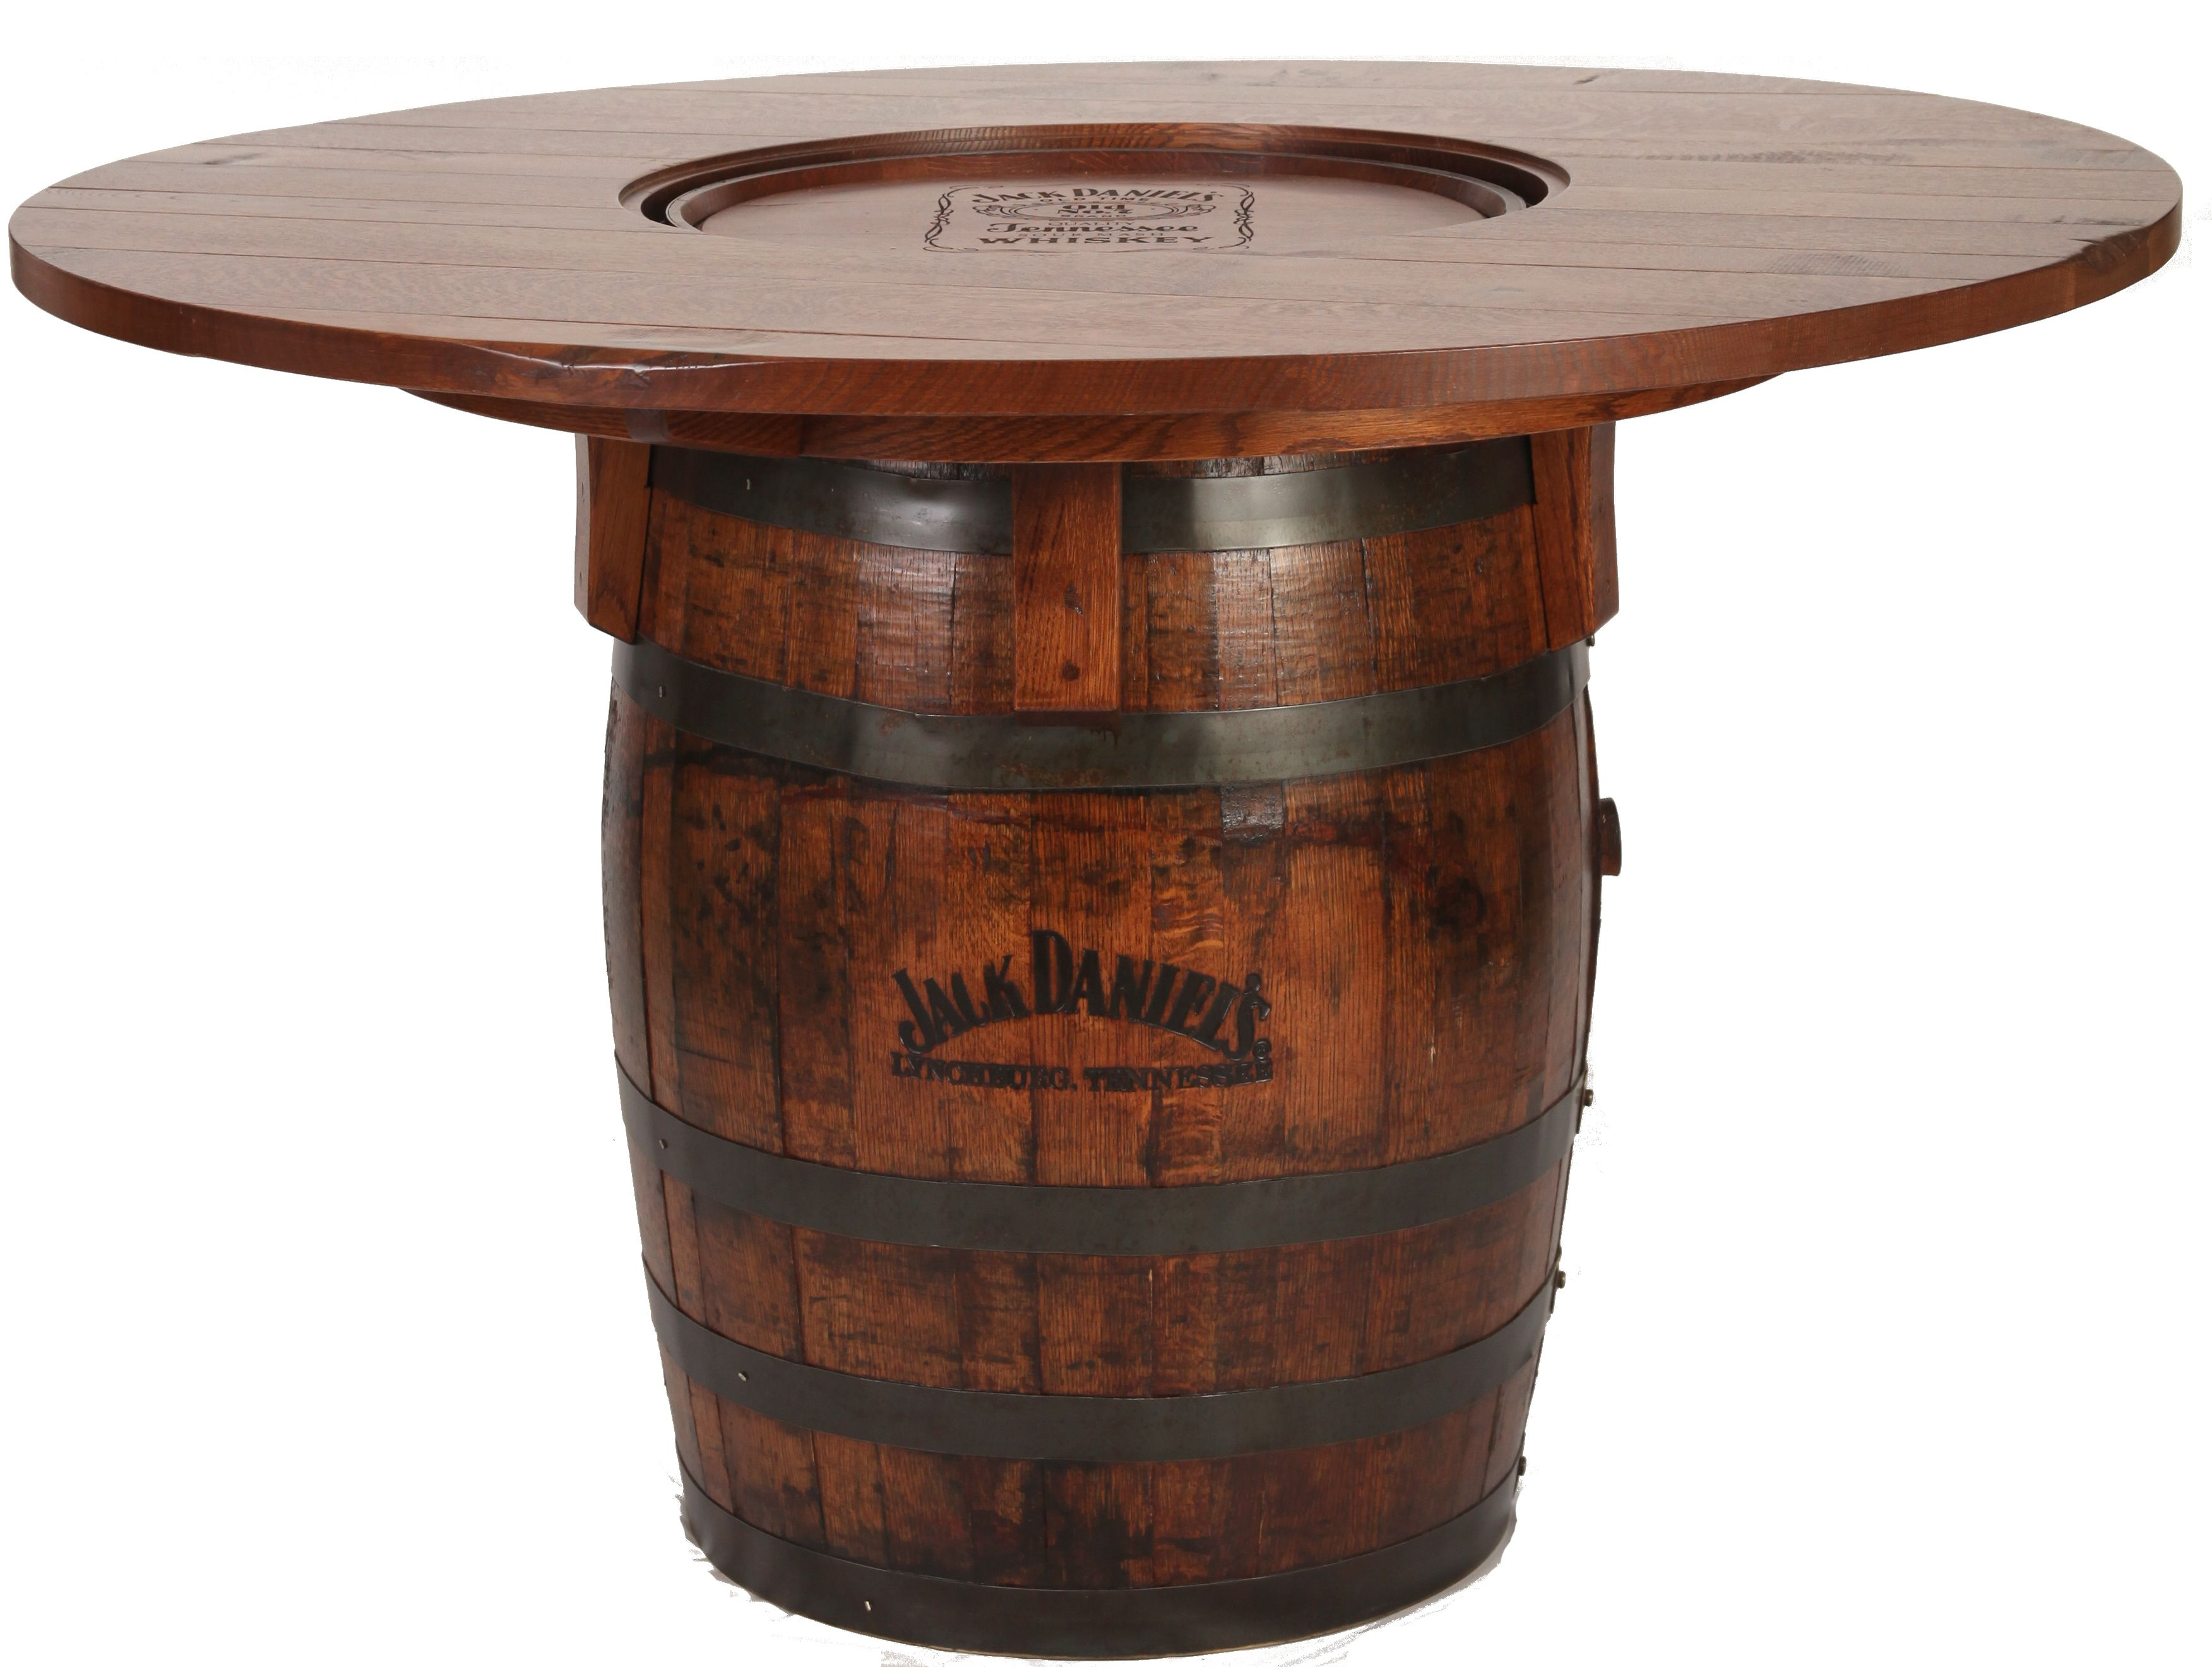 Jack Daniel S Table Jack Daniels Barrel Tablewsky54 In Quarter